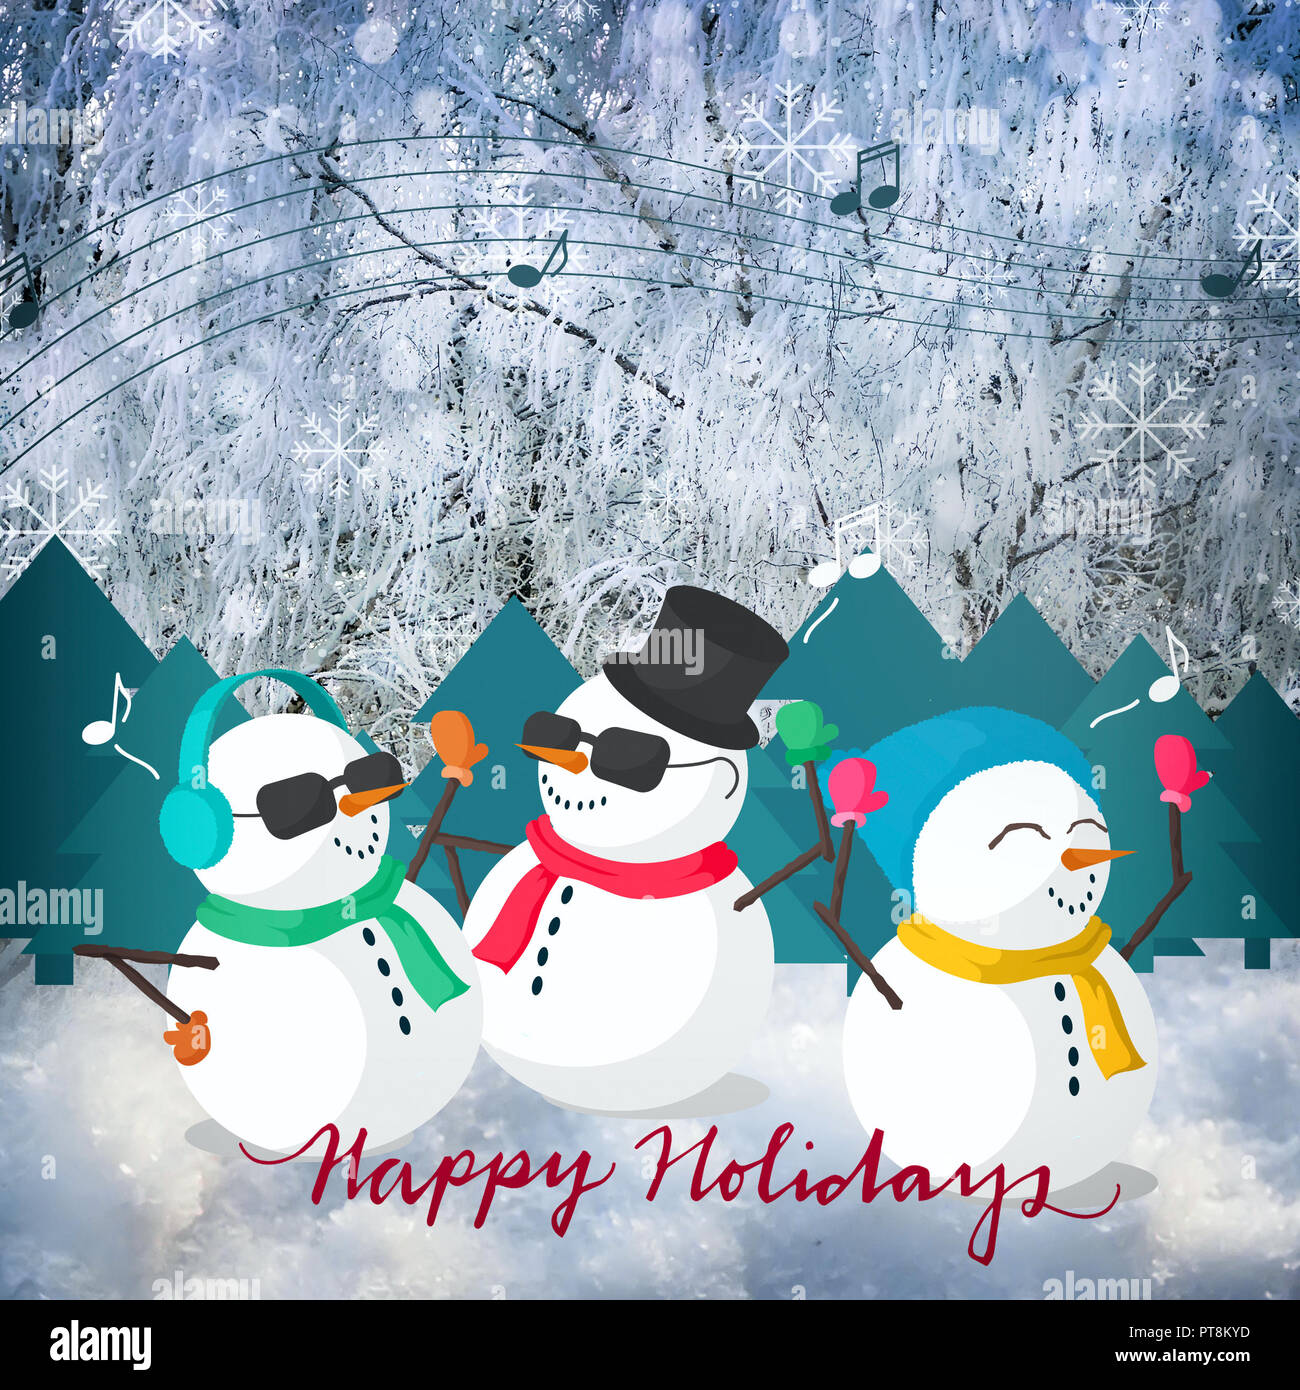 Christmas Greeting Card With The Image Of A Snowman Stock Photo